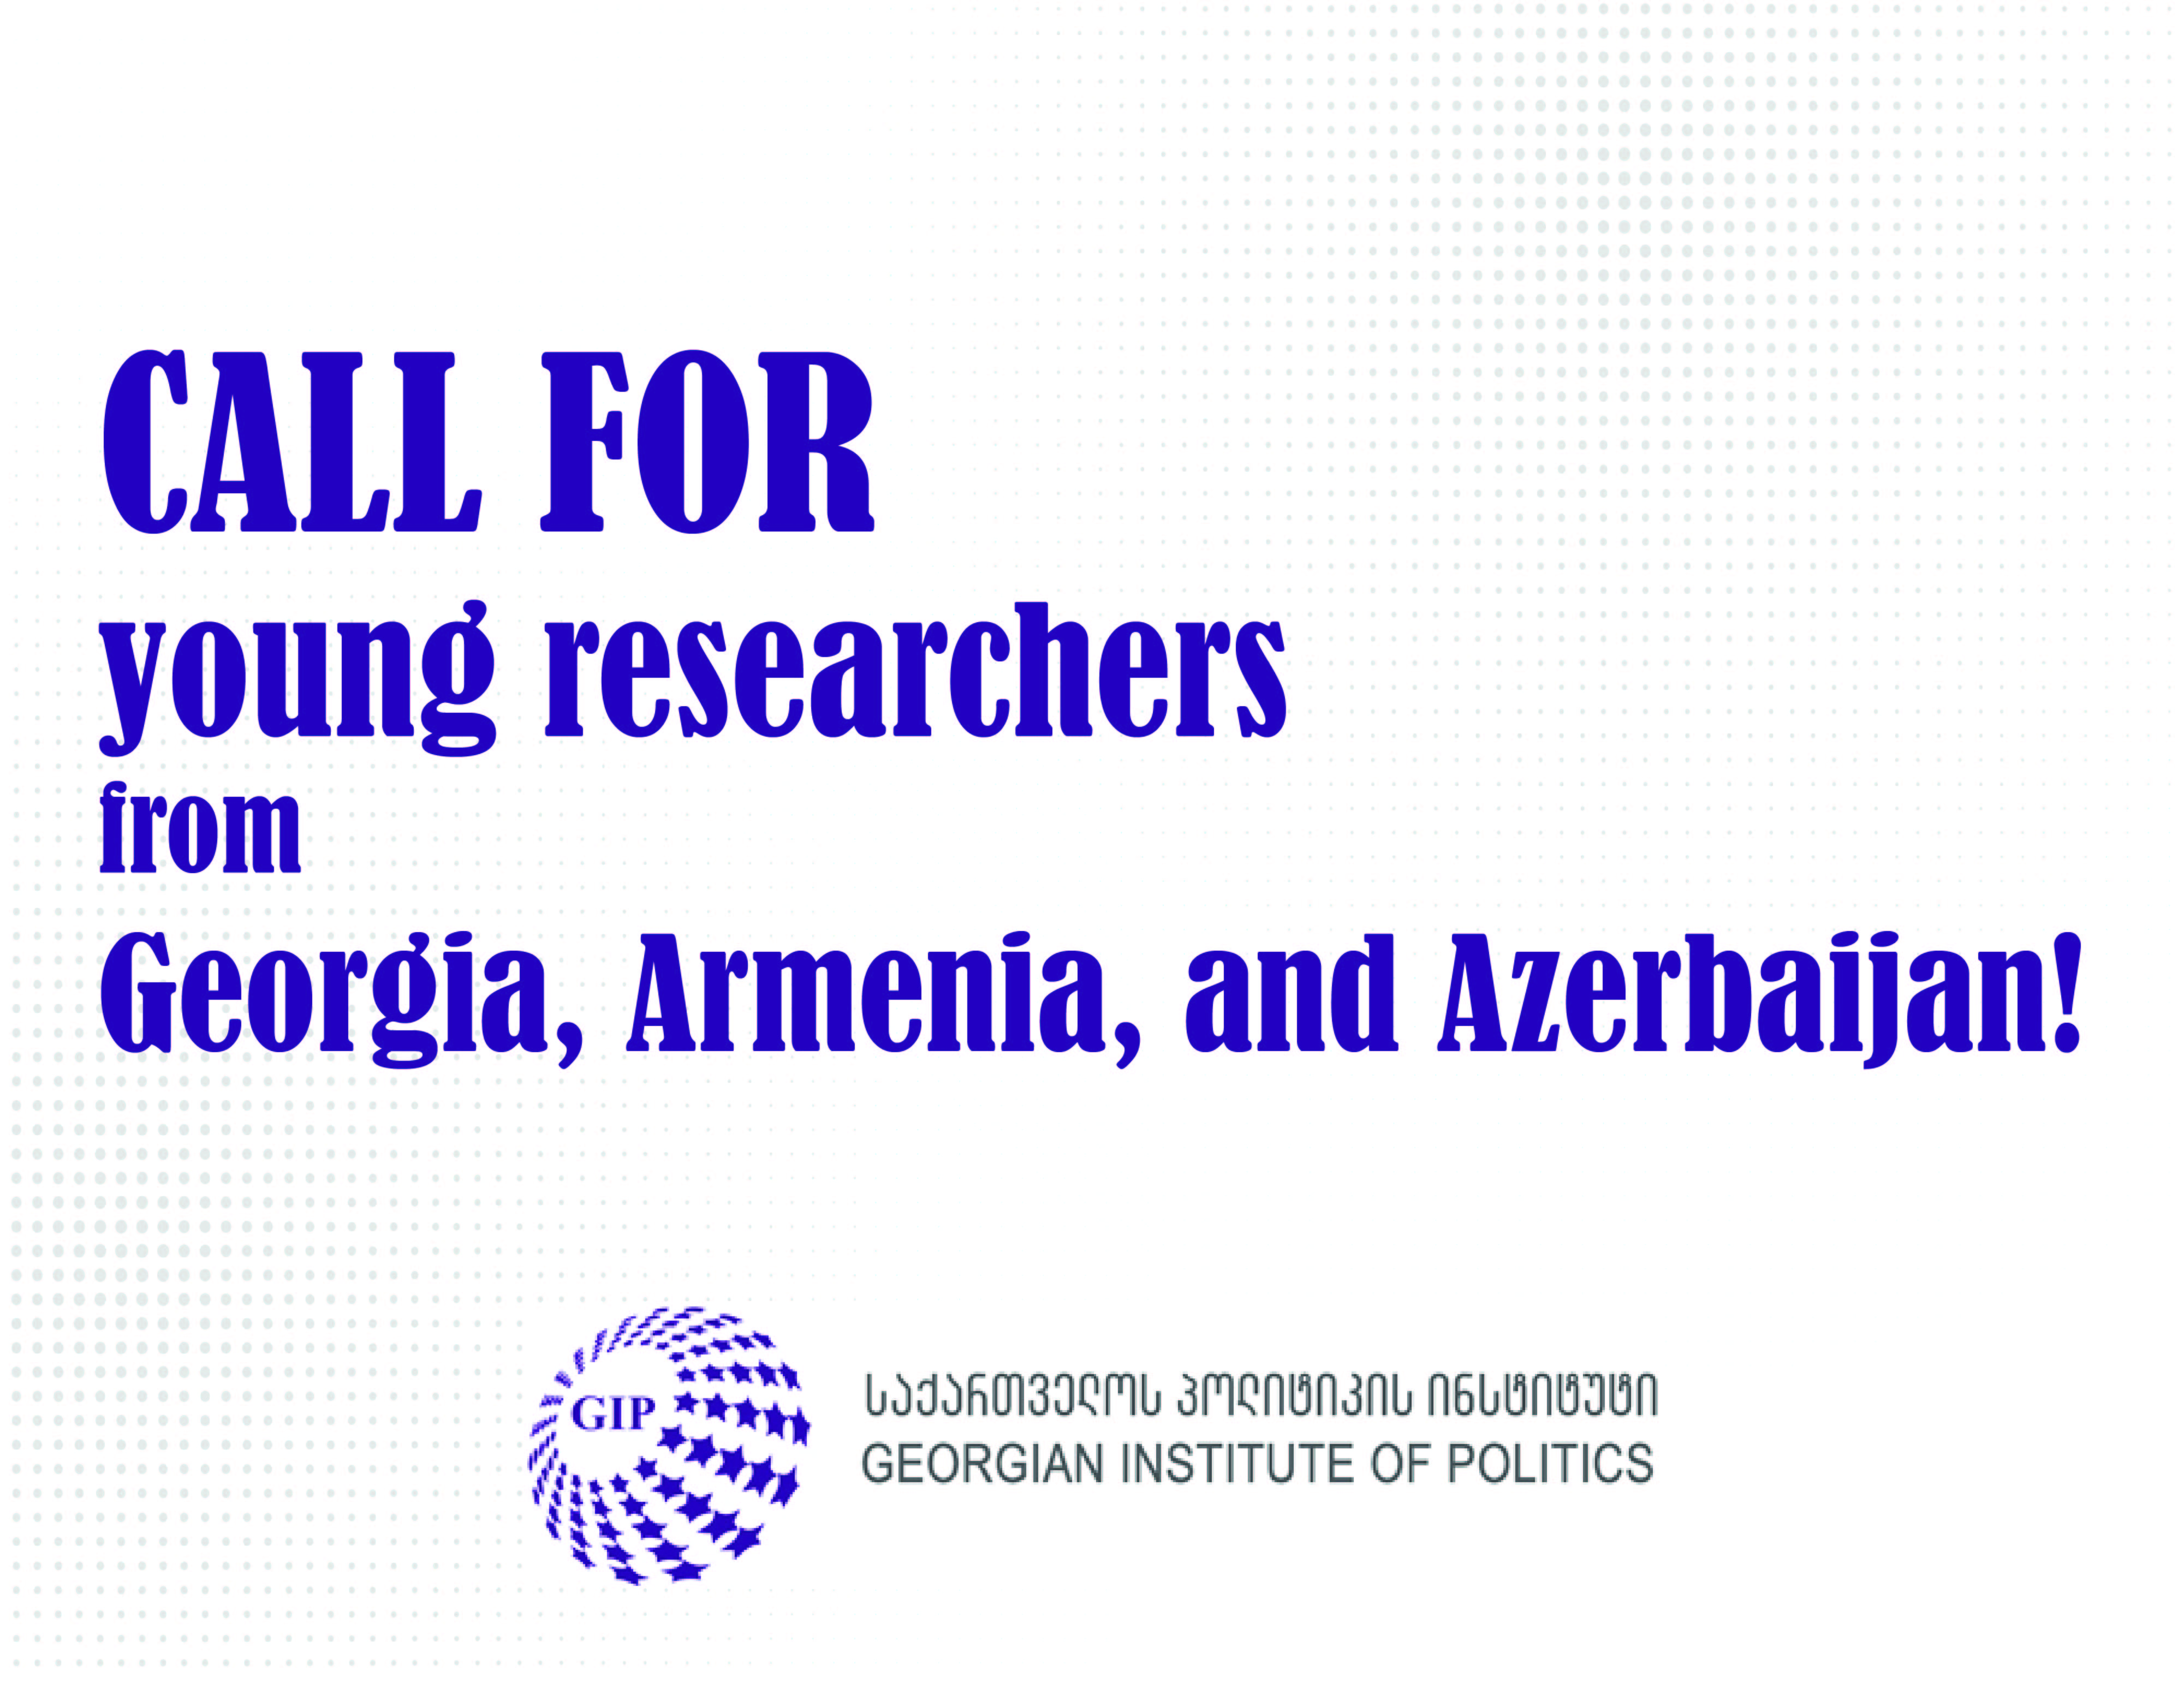 Call for young researchers from Georgia, Armenia, and Azerbaijan on the geopolitical shifts in the South Caucasus region